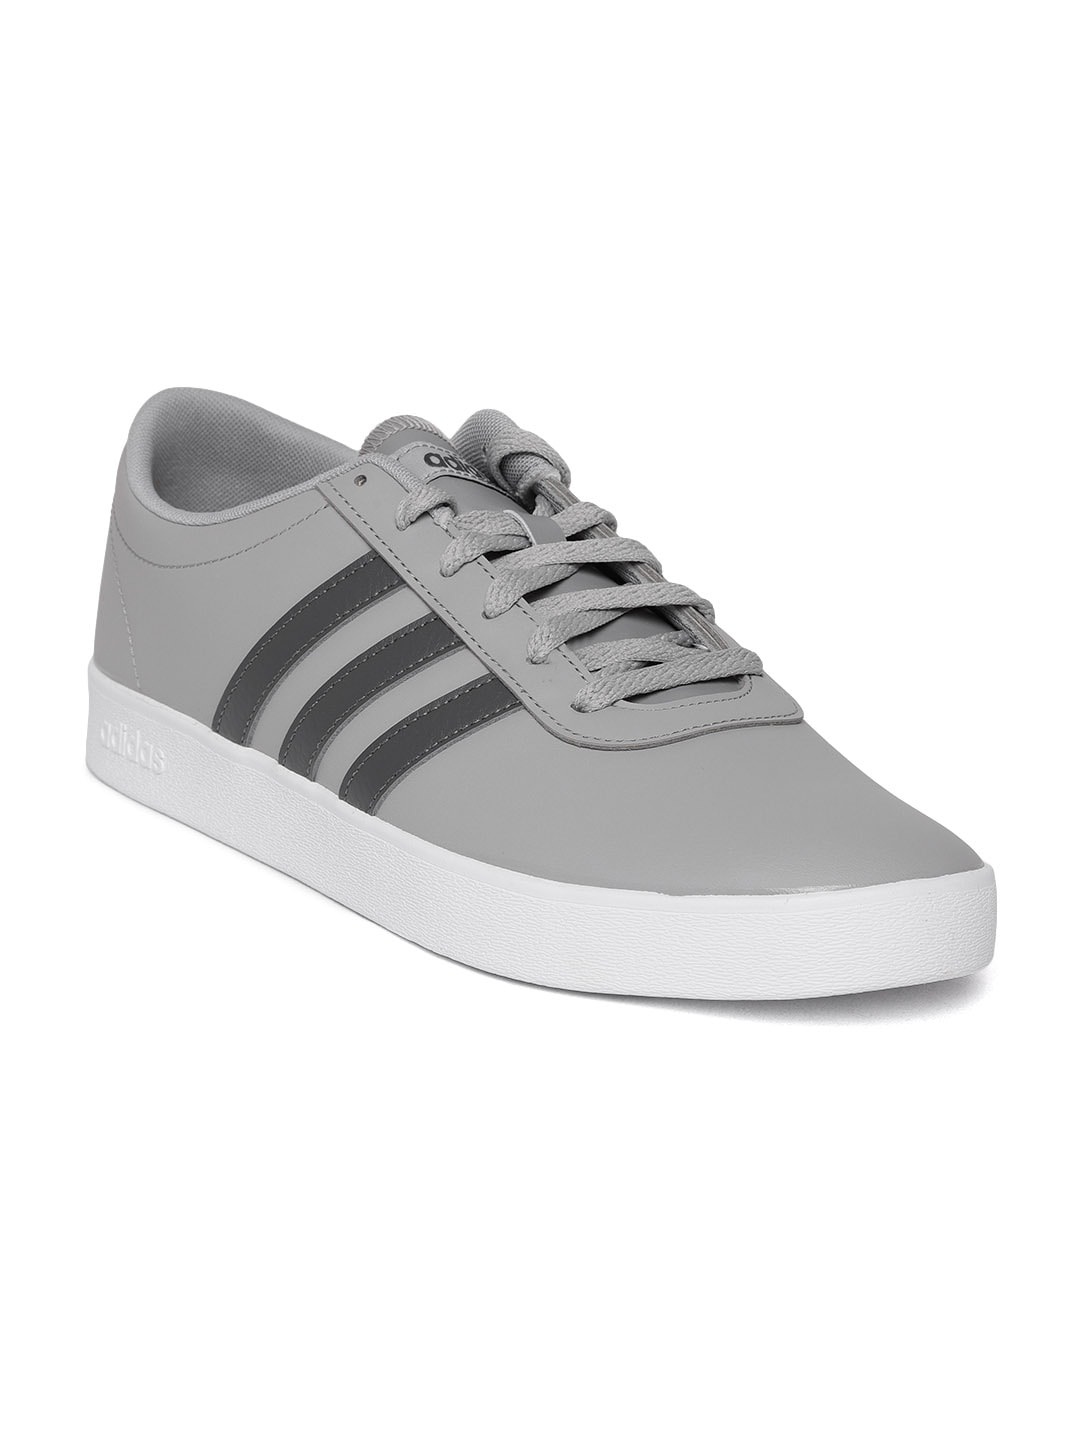 on sale 1c7d1 2b22b Vulc - Buy Vulc online in India